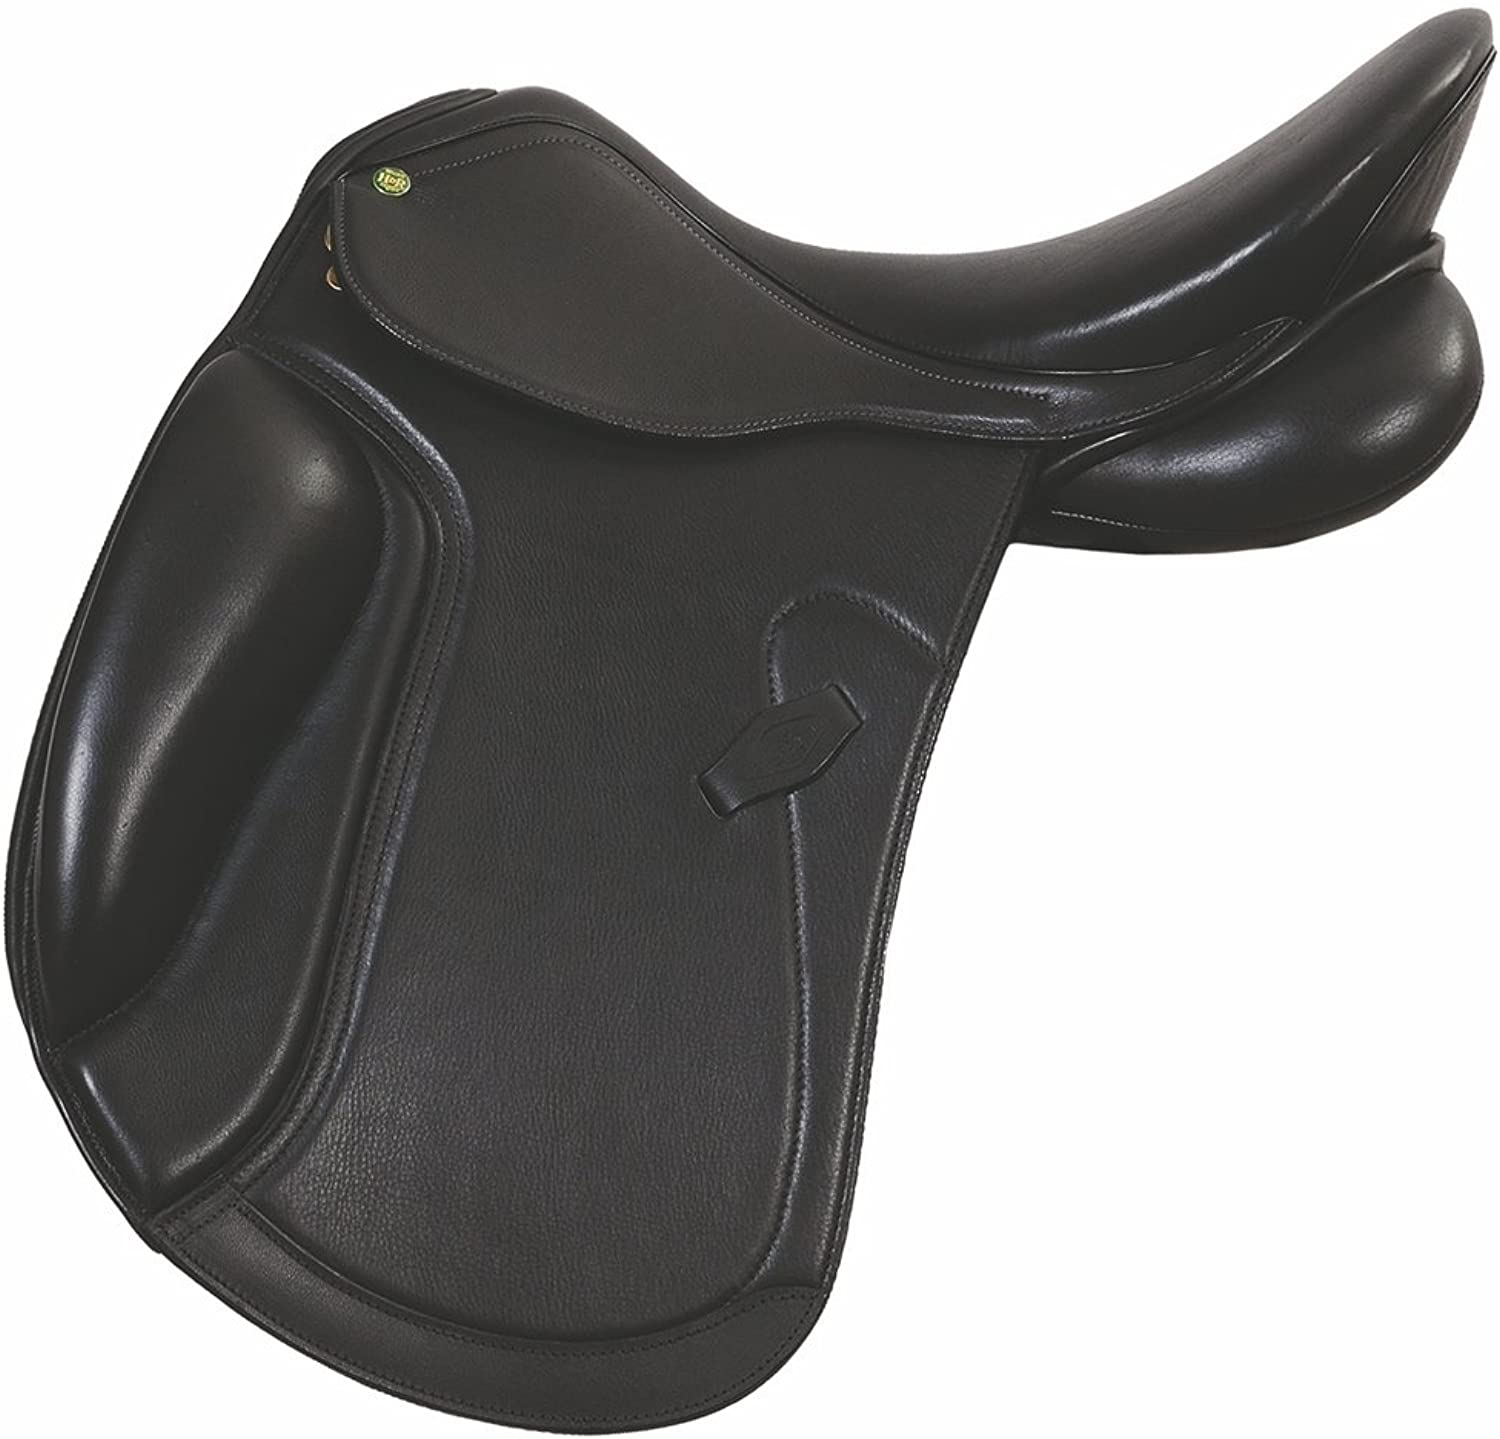 New Black Leather Dressage All Purpose English Horse Racing Tack & Saddle ES506 (14 inches, Black ES 506)